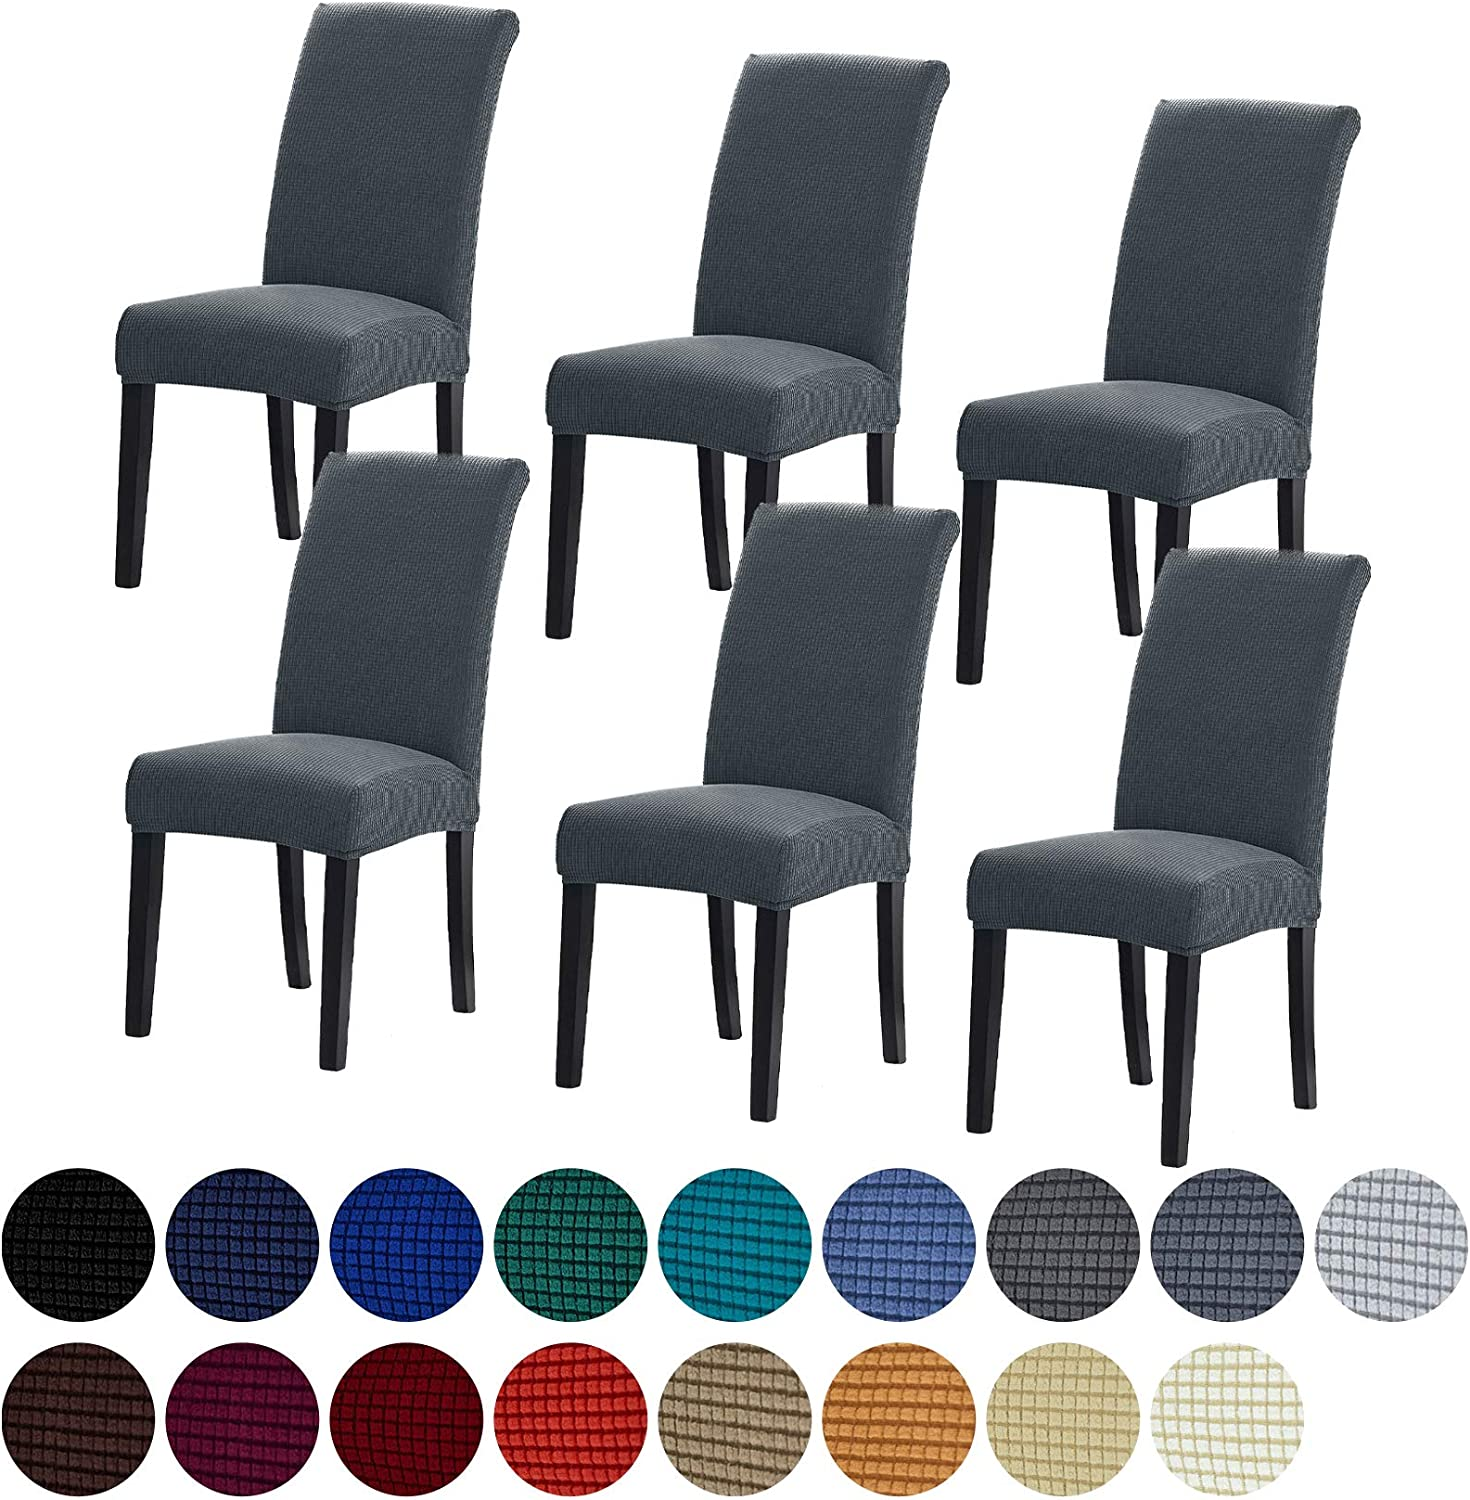 Howhic Stretch Chair Covers for Dining Room Set of 6, Removable Washable Dining Room Chair Covers, Dining Chair Slipcovers Seat Protector, Great Home Decor and Banquet Upholstery (Gray, 6 Pack)